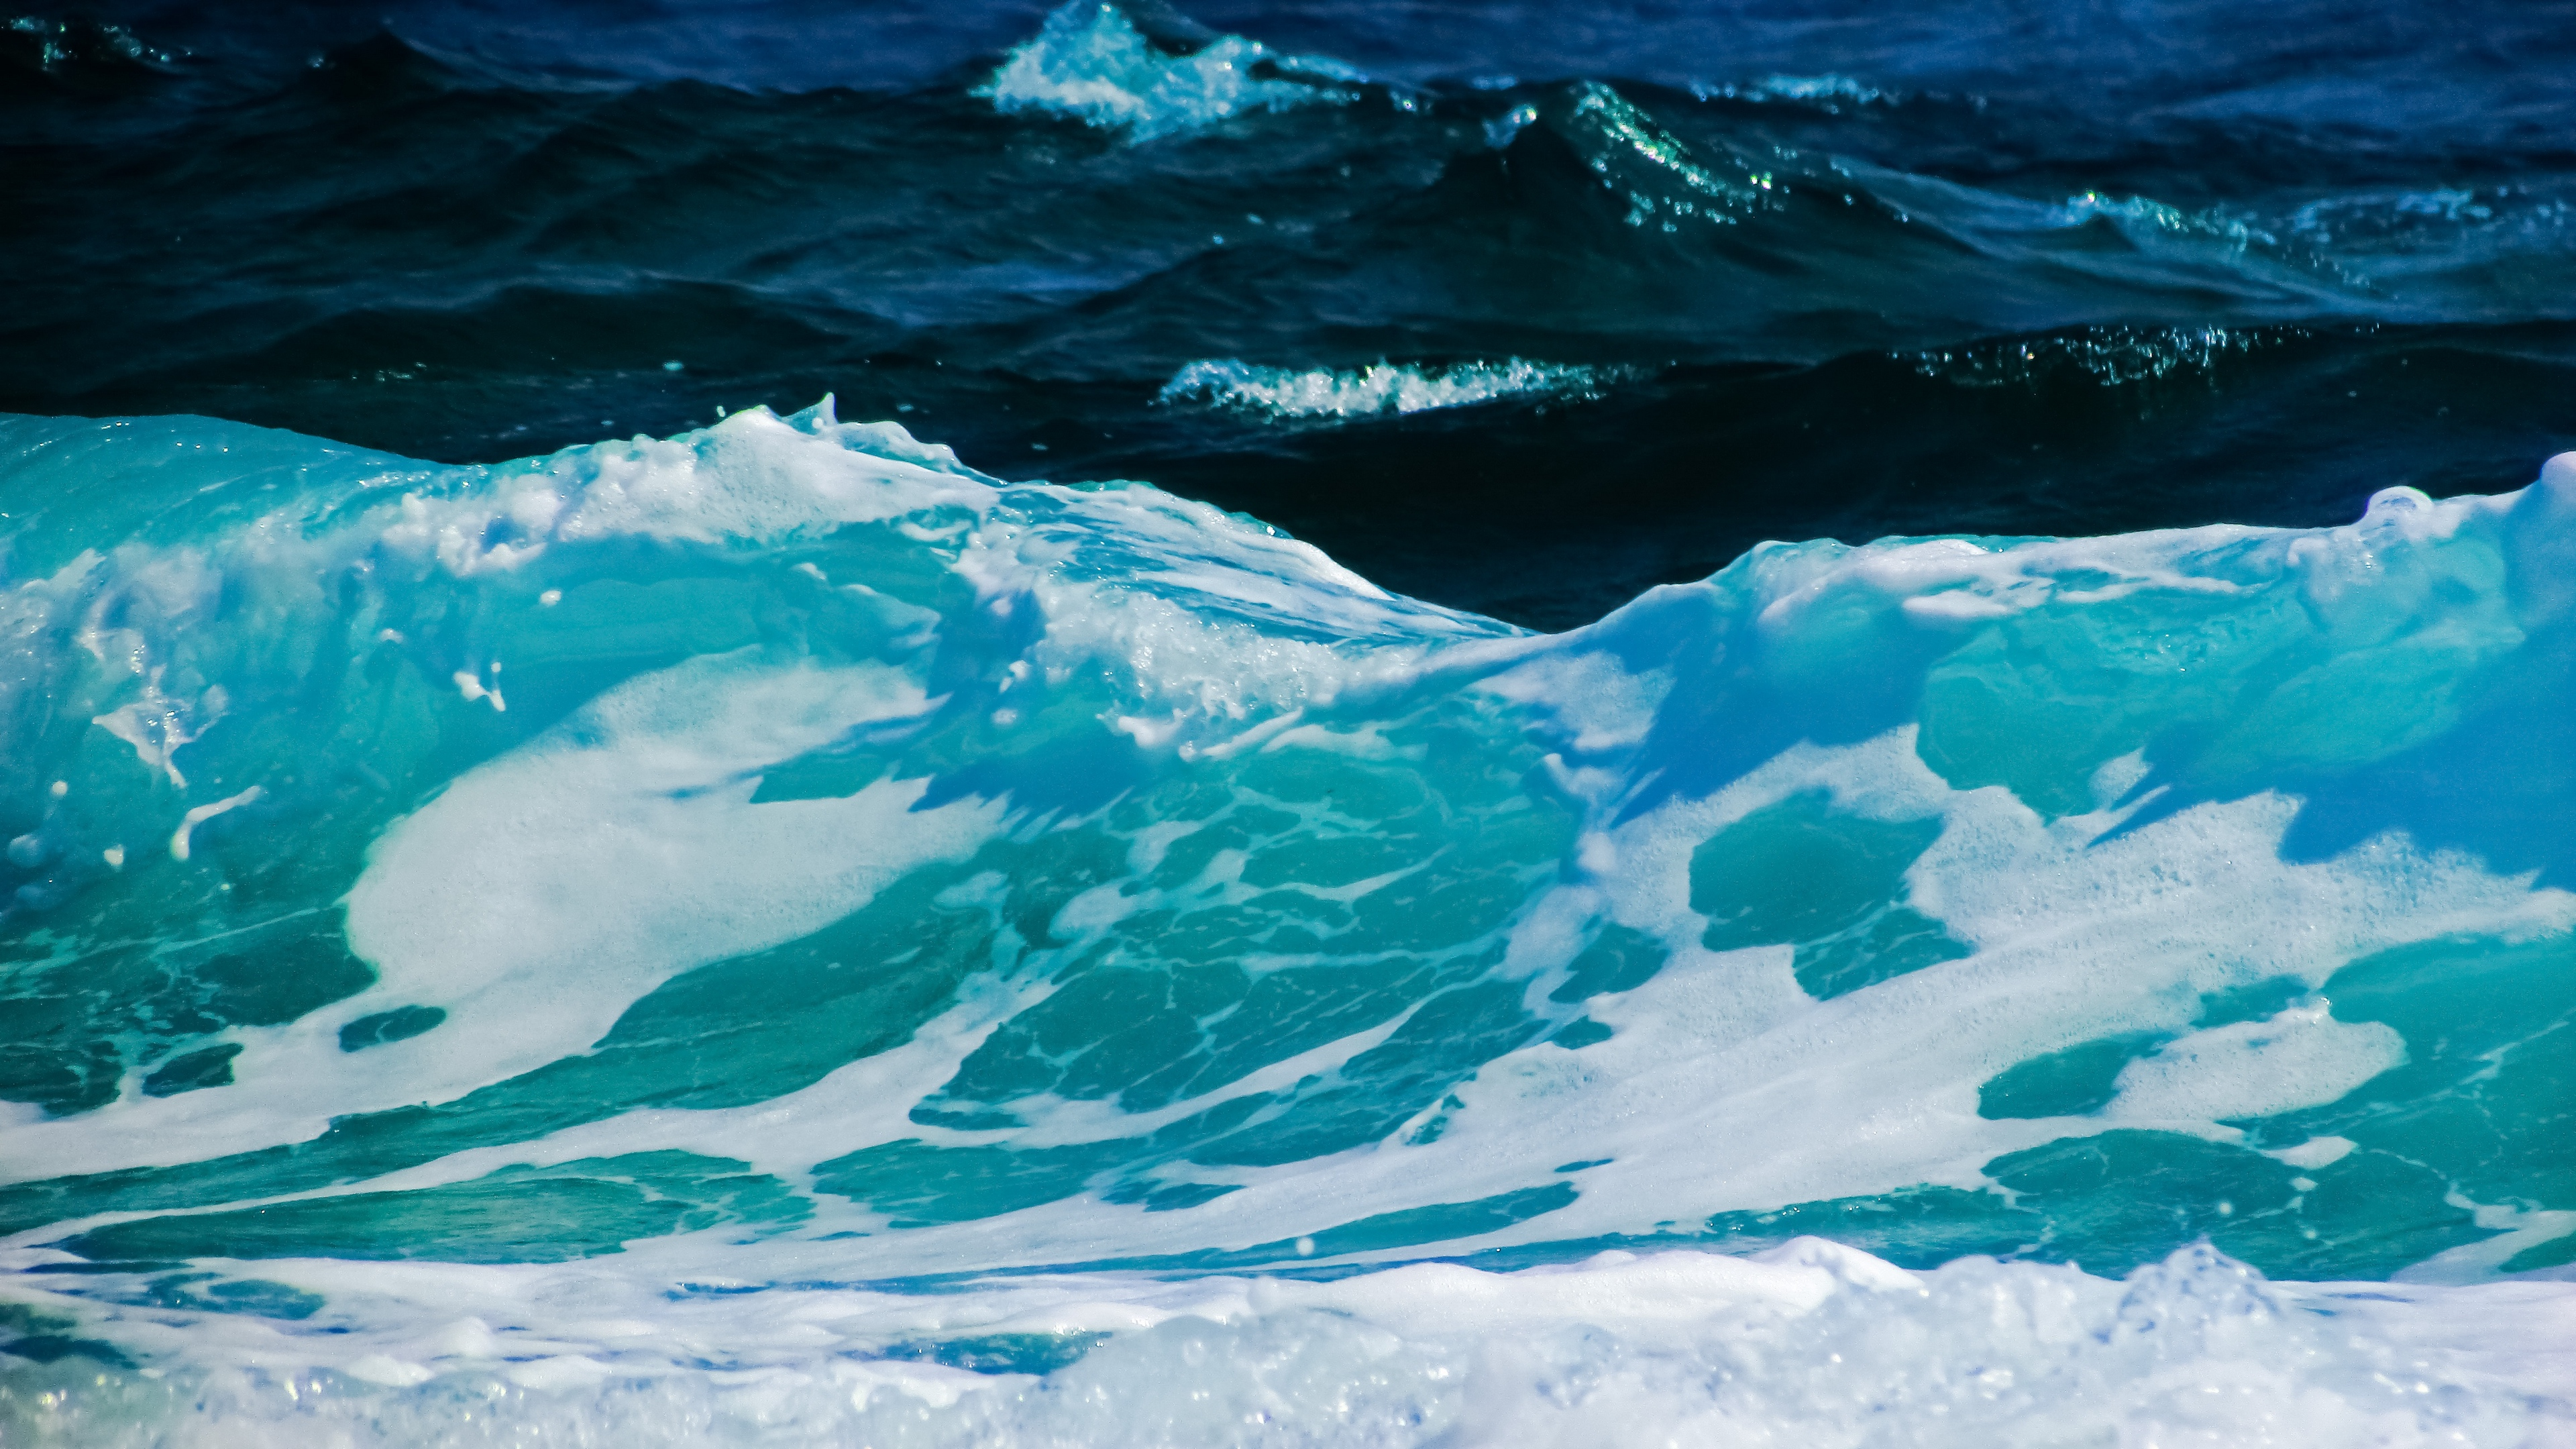 Wallpaper 4k Waves Sea Foam Surf 4k Foam Sea Waves